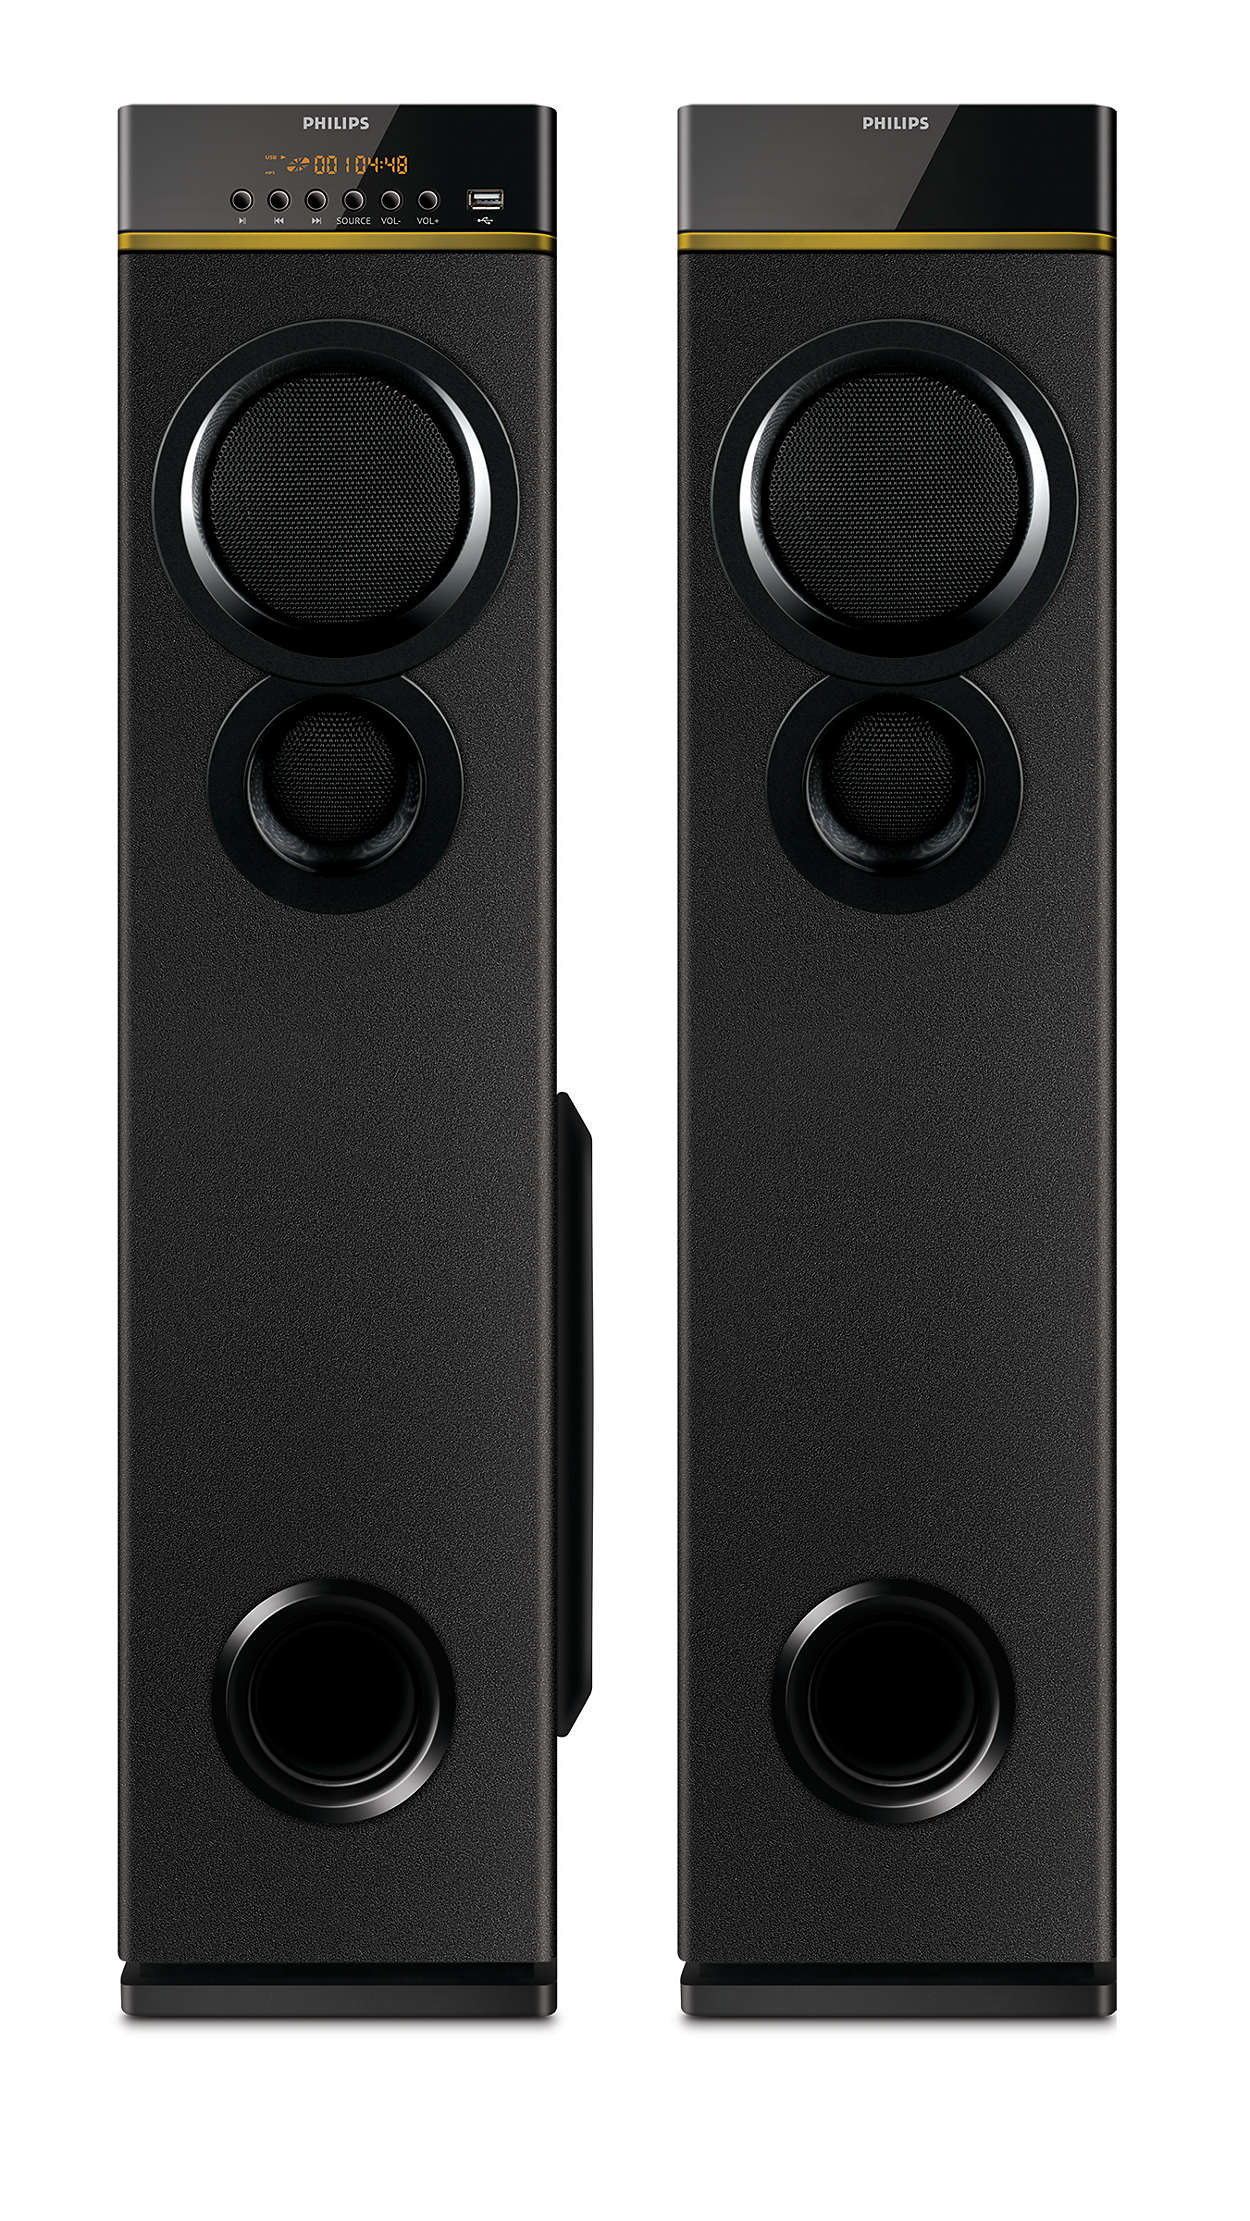 Multimedia tower speakers with wireless microphone